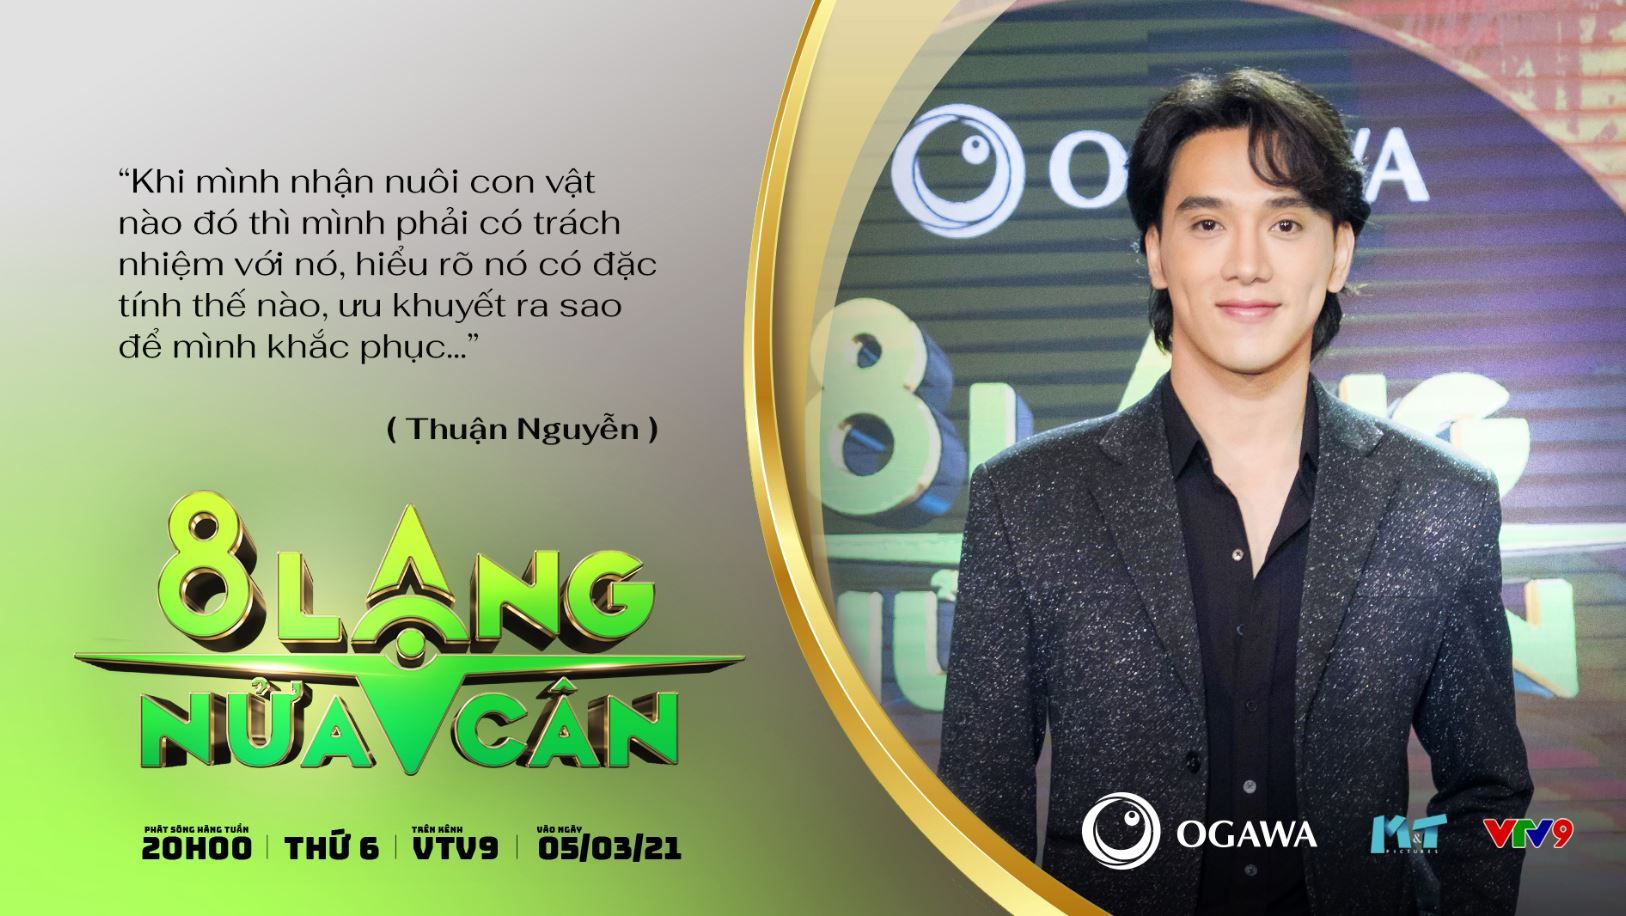 Thuận Nguyễn quote